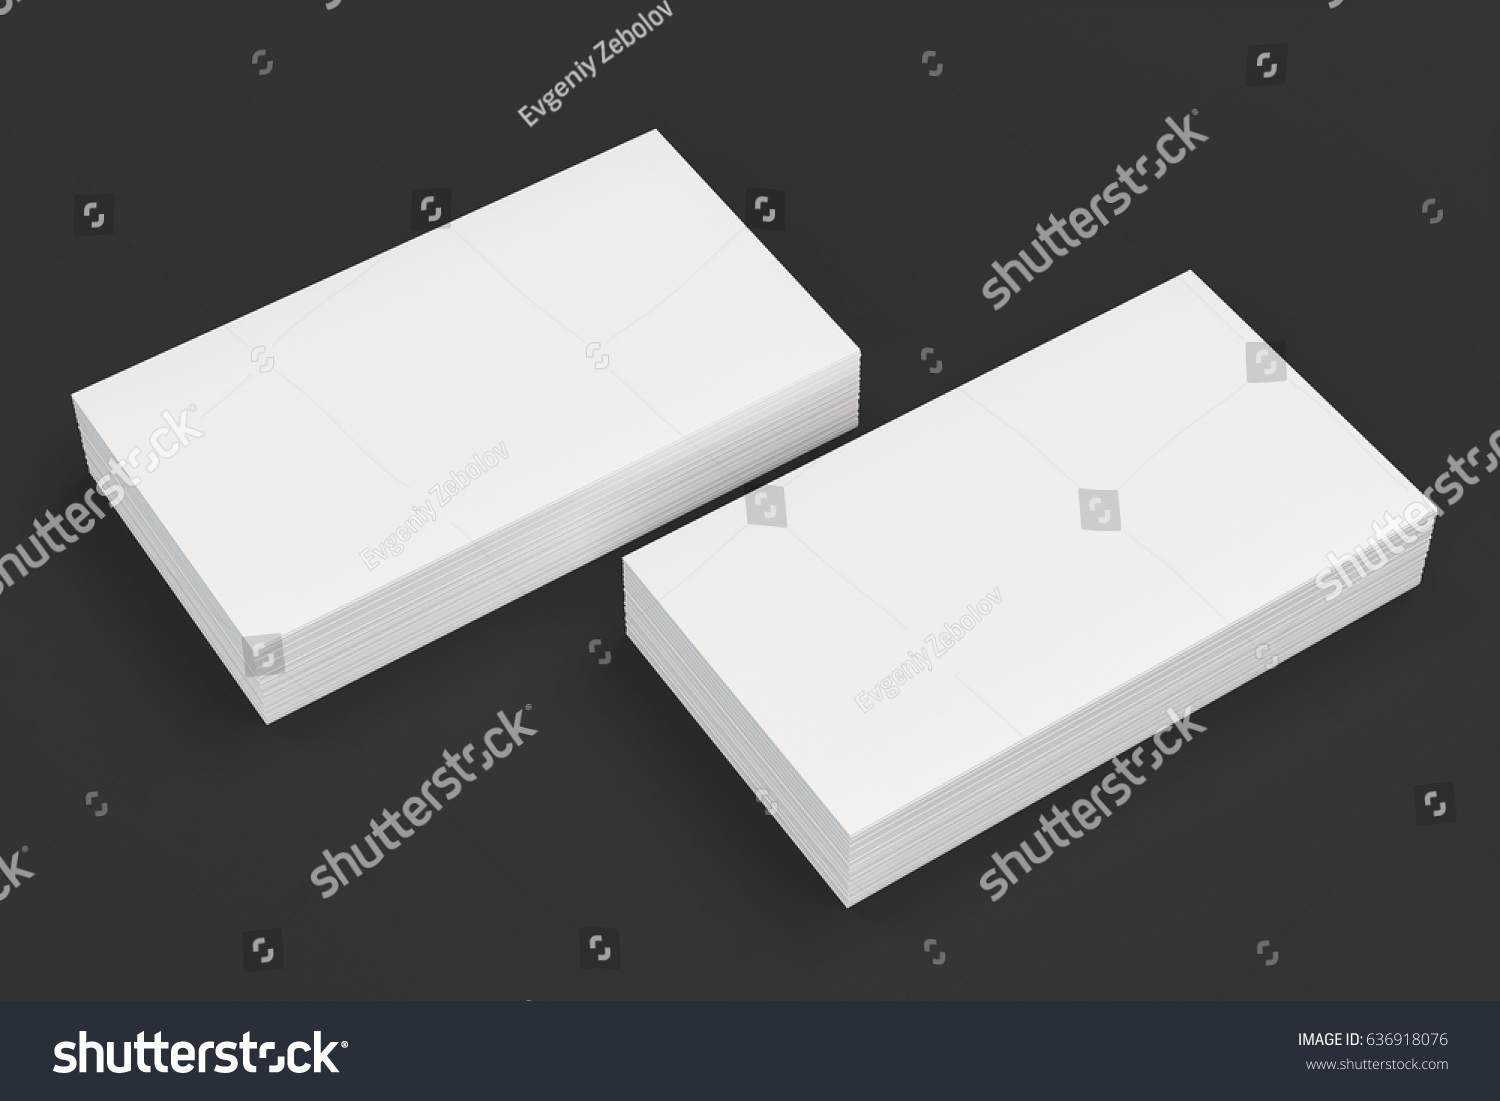 White blank business cards mockup on stock illustration 636918076 white blank business cards mockup on stock illustration 636918076 shutterstock reheart Choice Image